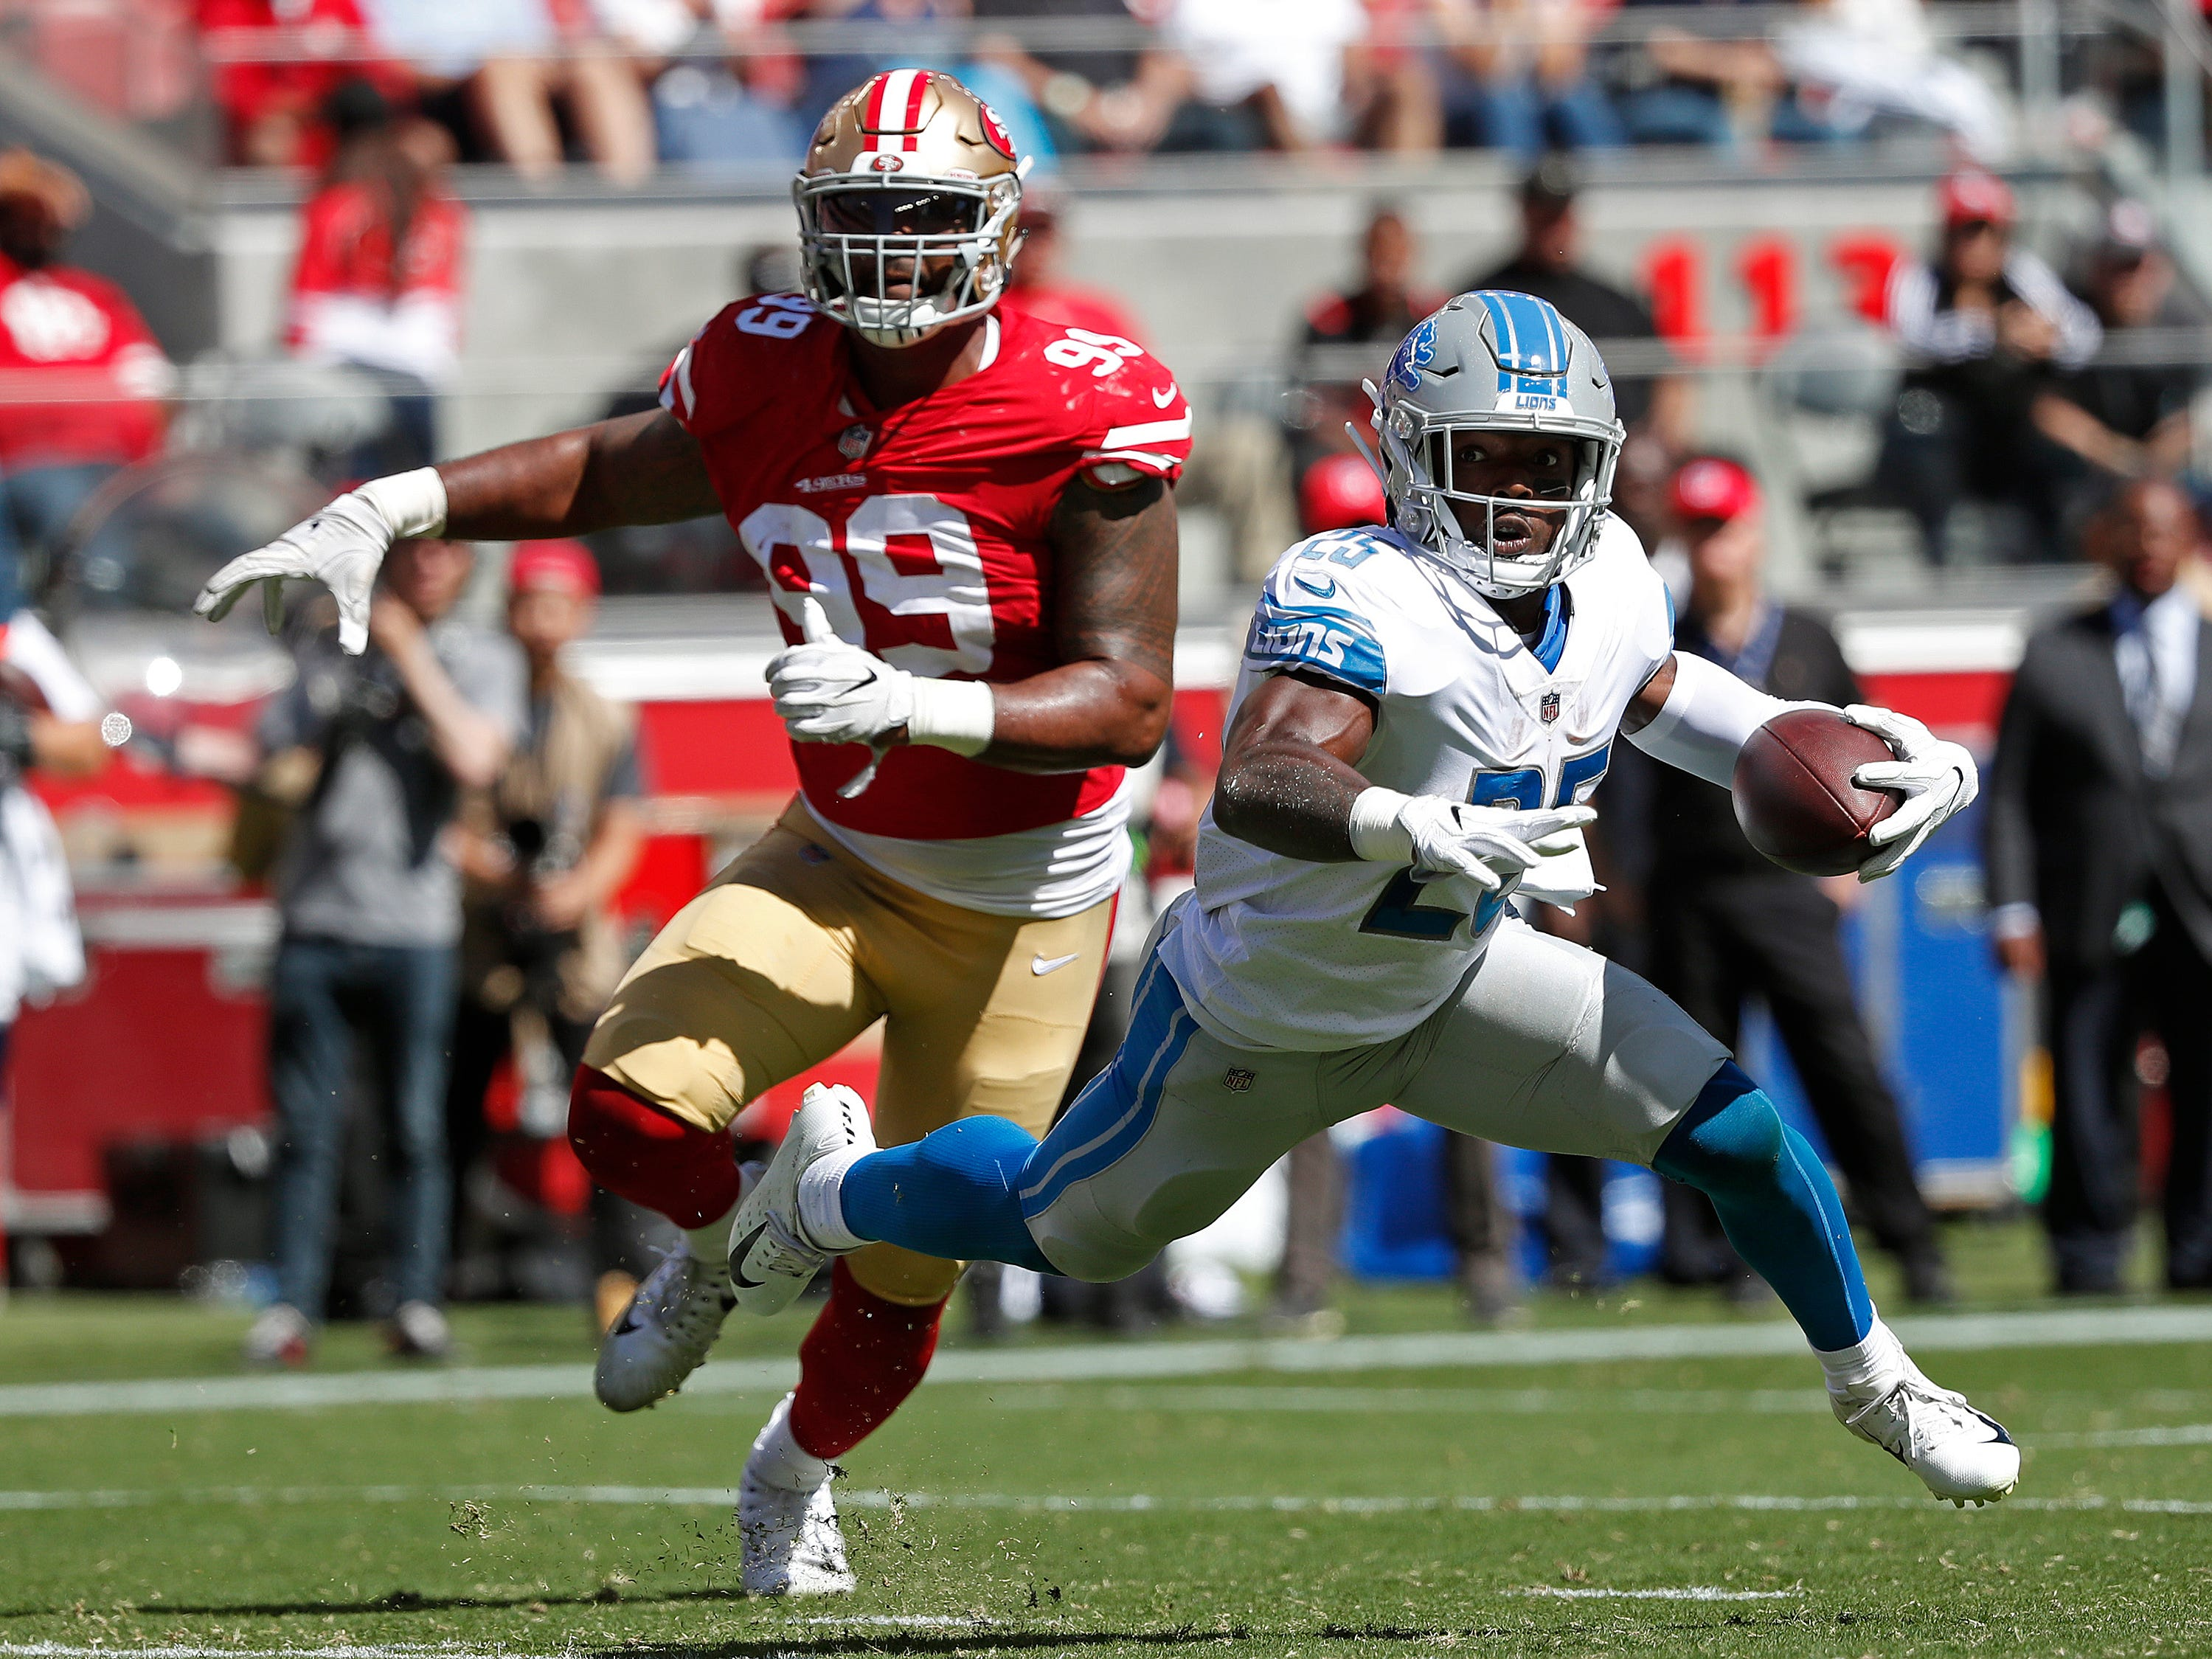 Detroit Lions running back Theo Riddick runs with the ball as San Francisco 49ers defensive end DeForest Buckner (99) pursues during the first half.